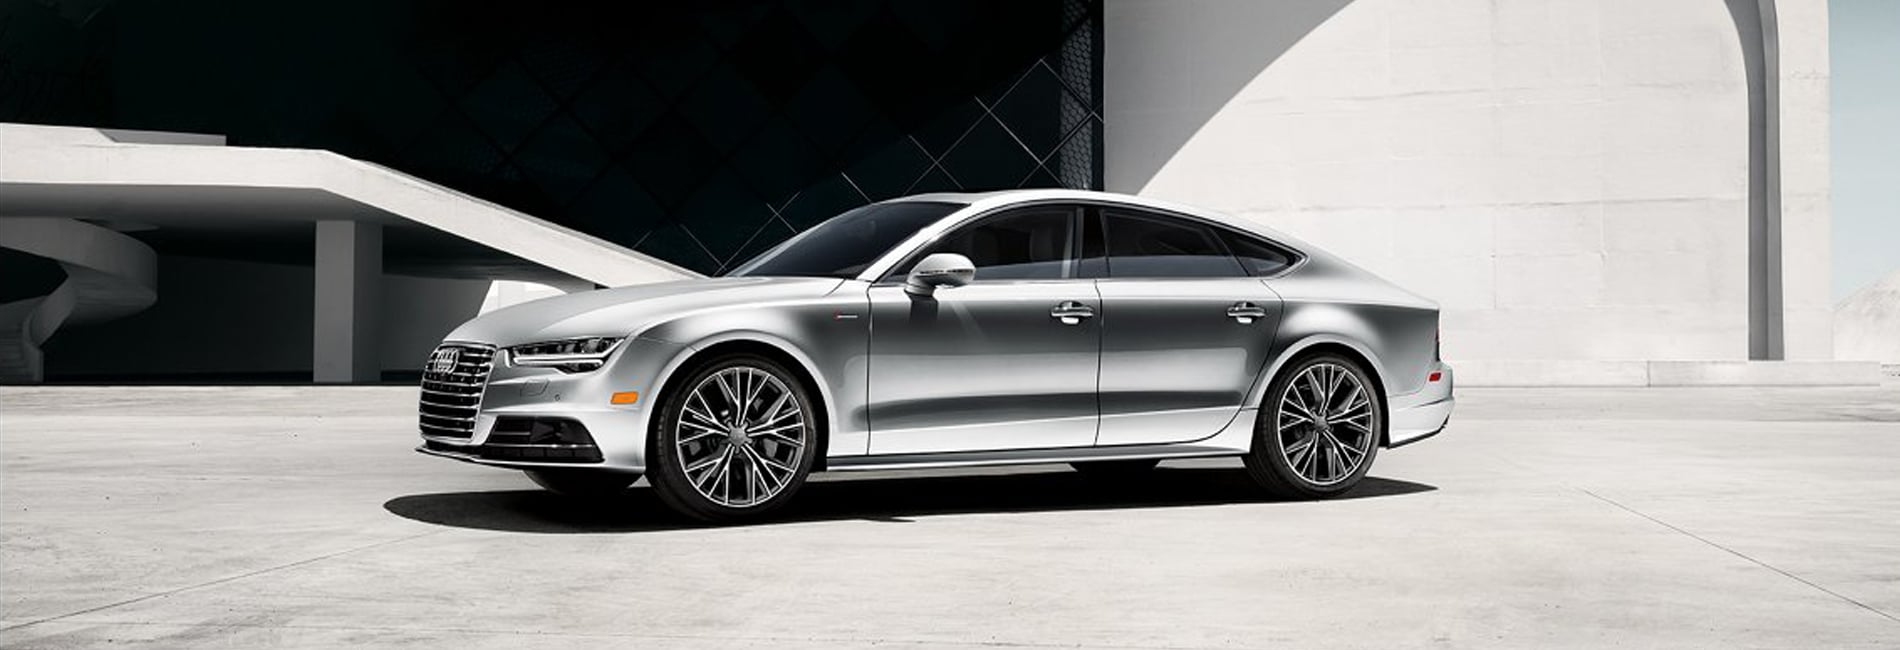 Audi A7 Exterior Vehicle Features